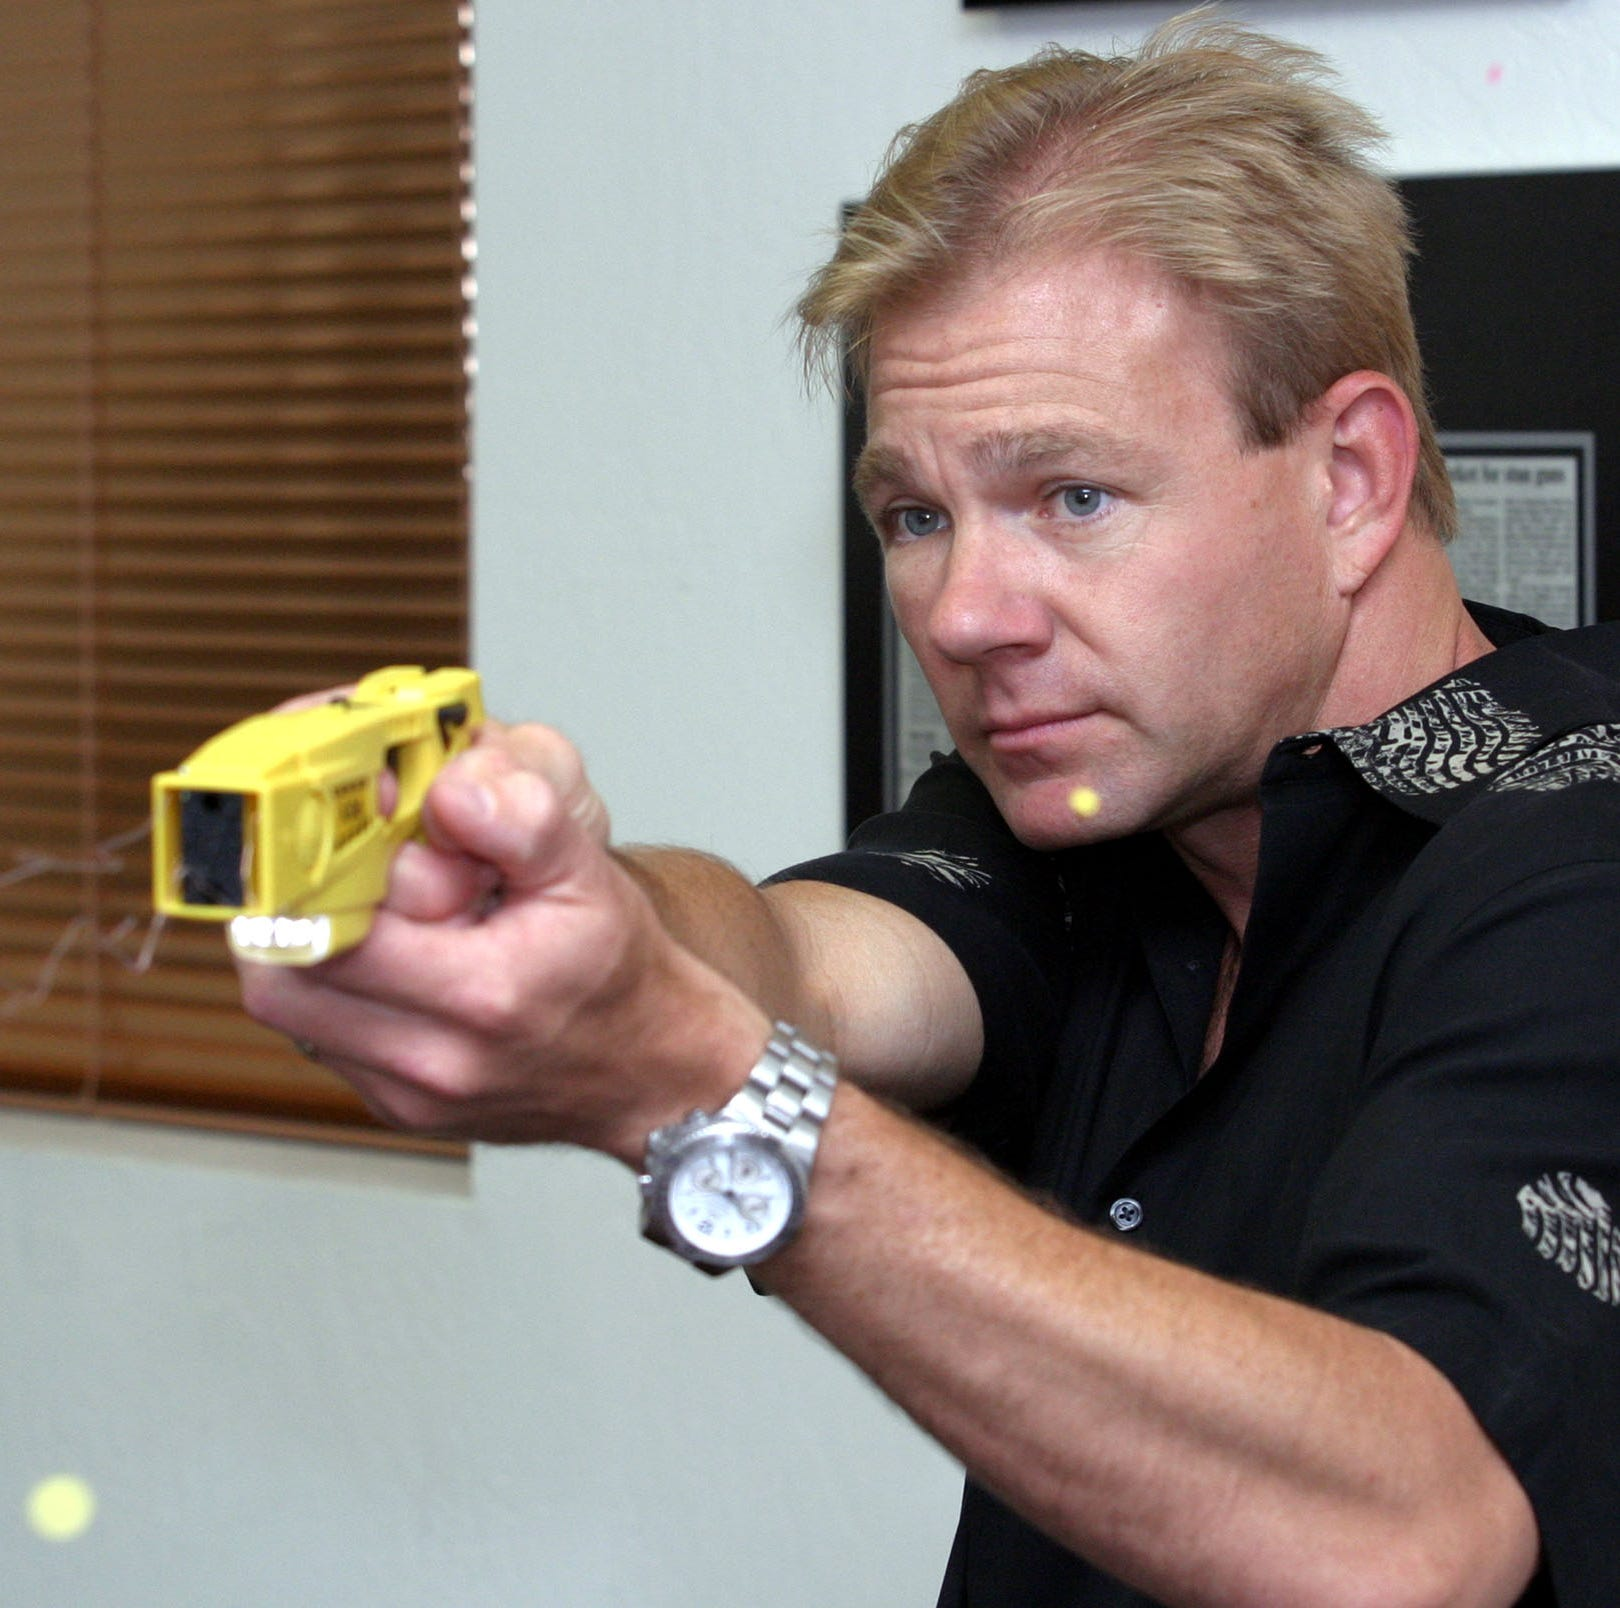 Steve Tuttle fires the Taser X-26 model, in Scottsdale, Ariz. in this 2004 file photo.